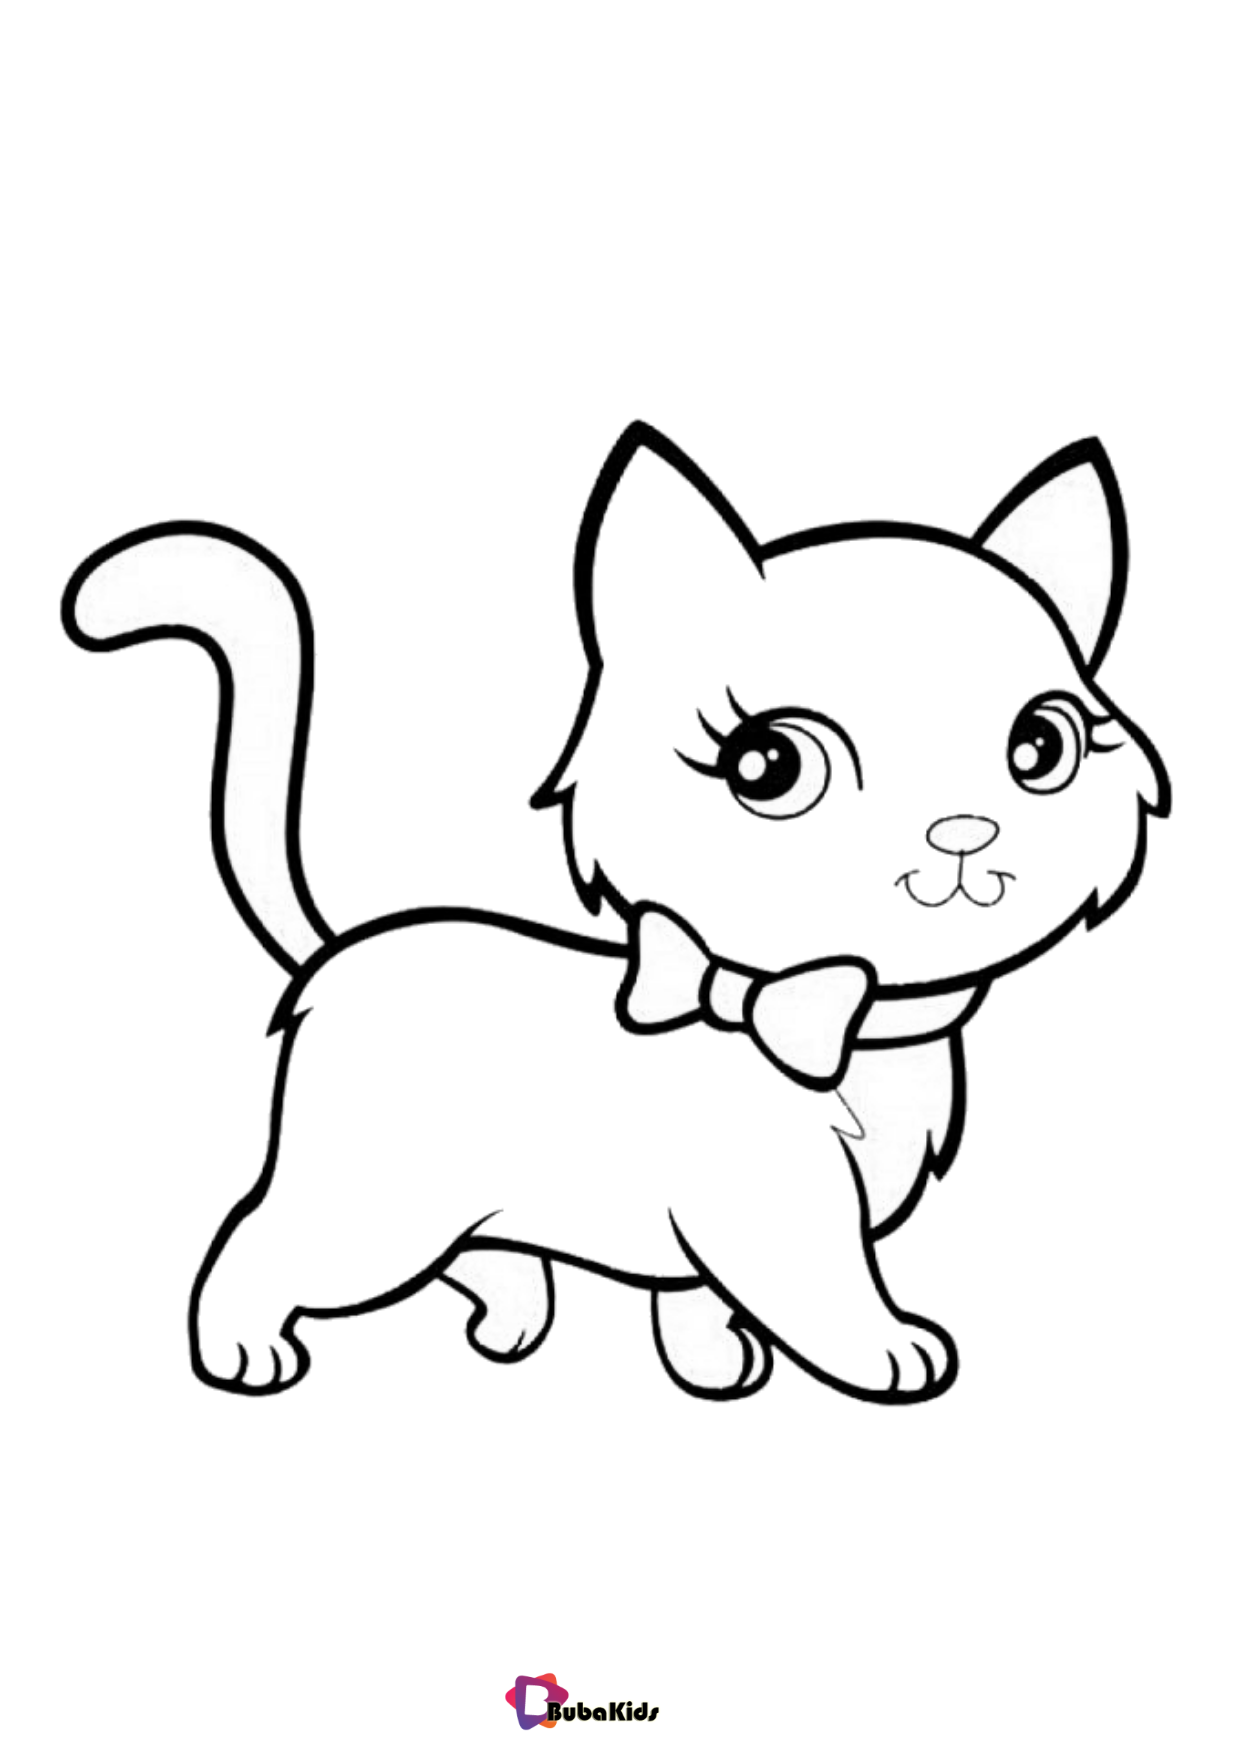 Cute kitten coloring page for kids colouring pages Wallpaper